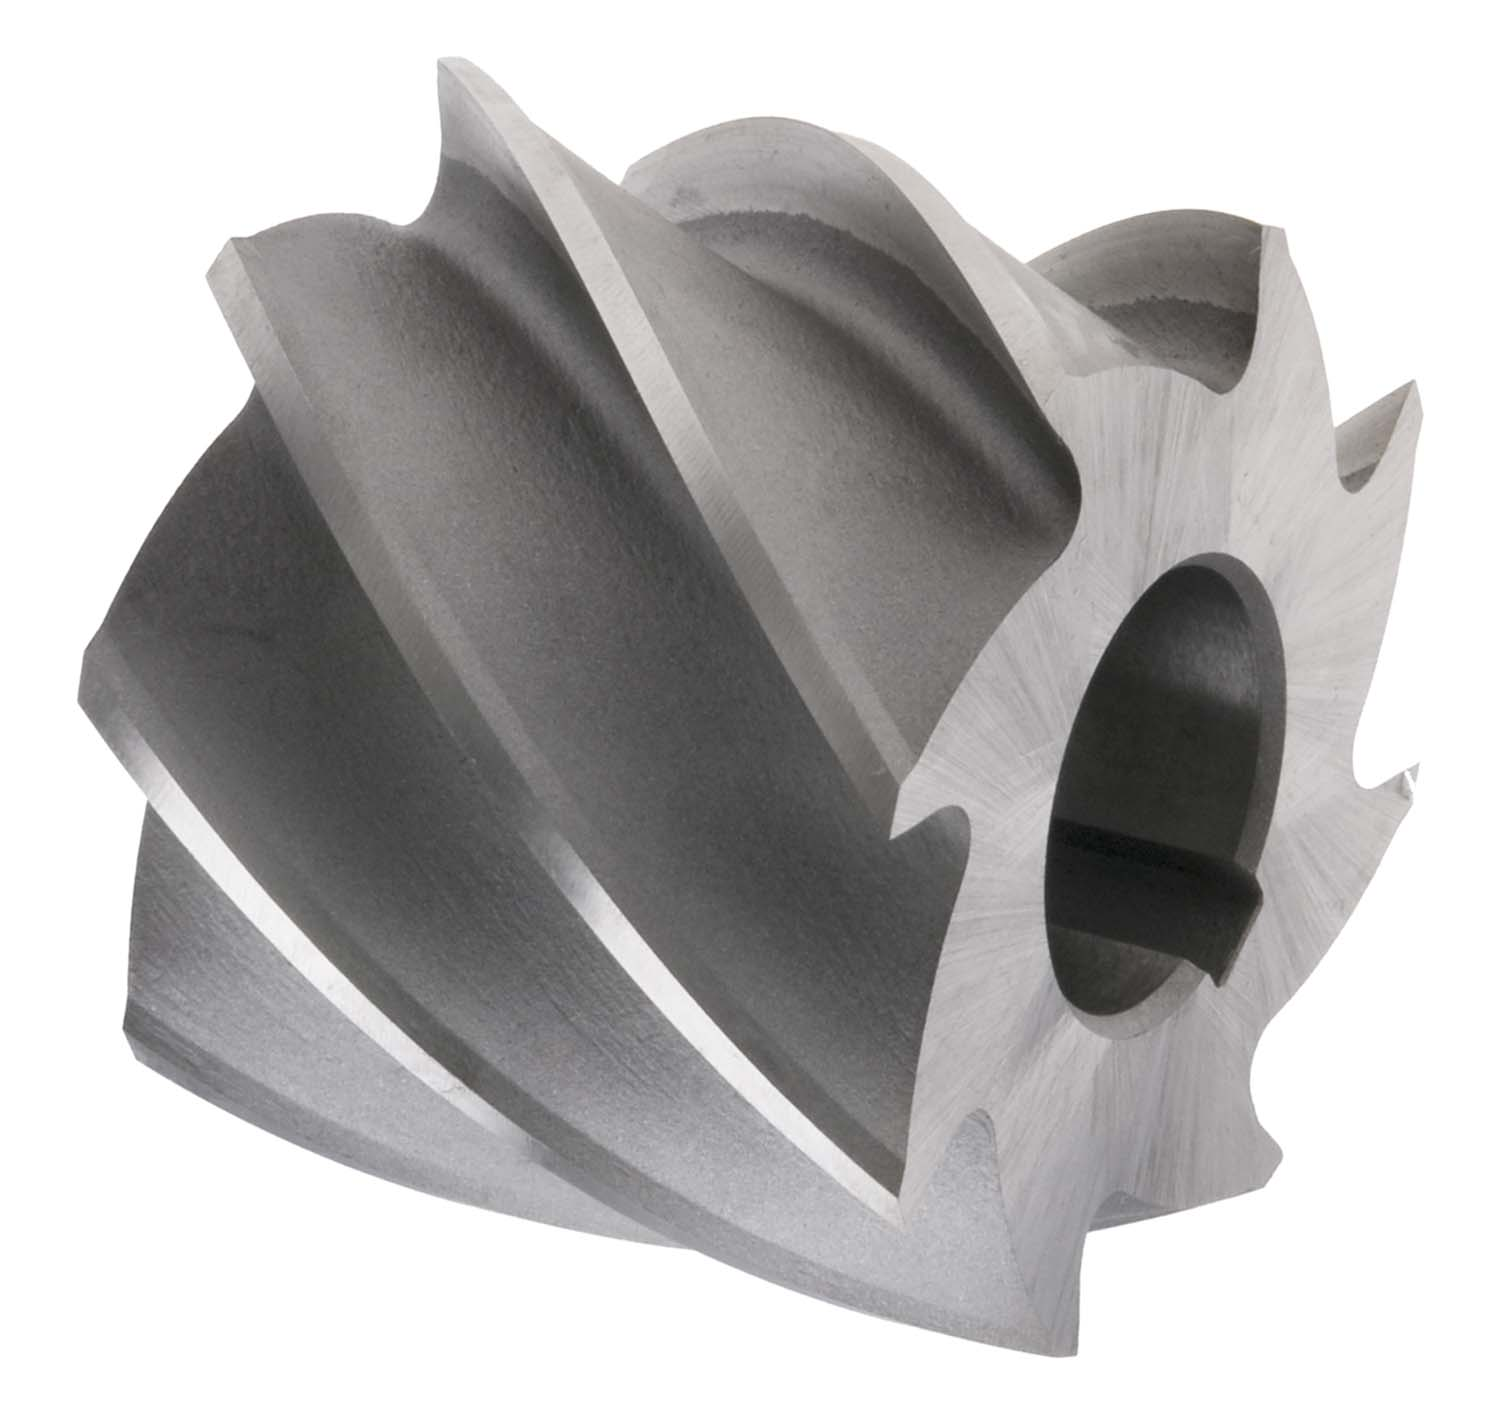 4-1/2 X 6 X 2 Heavy Duty Plain Milling Cutter, High Speed Steel